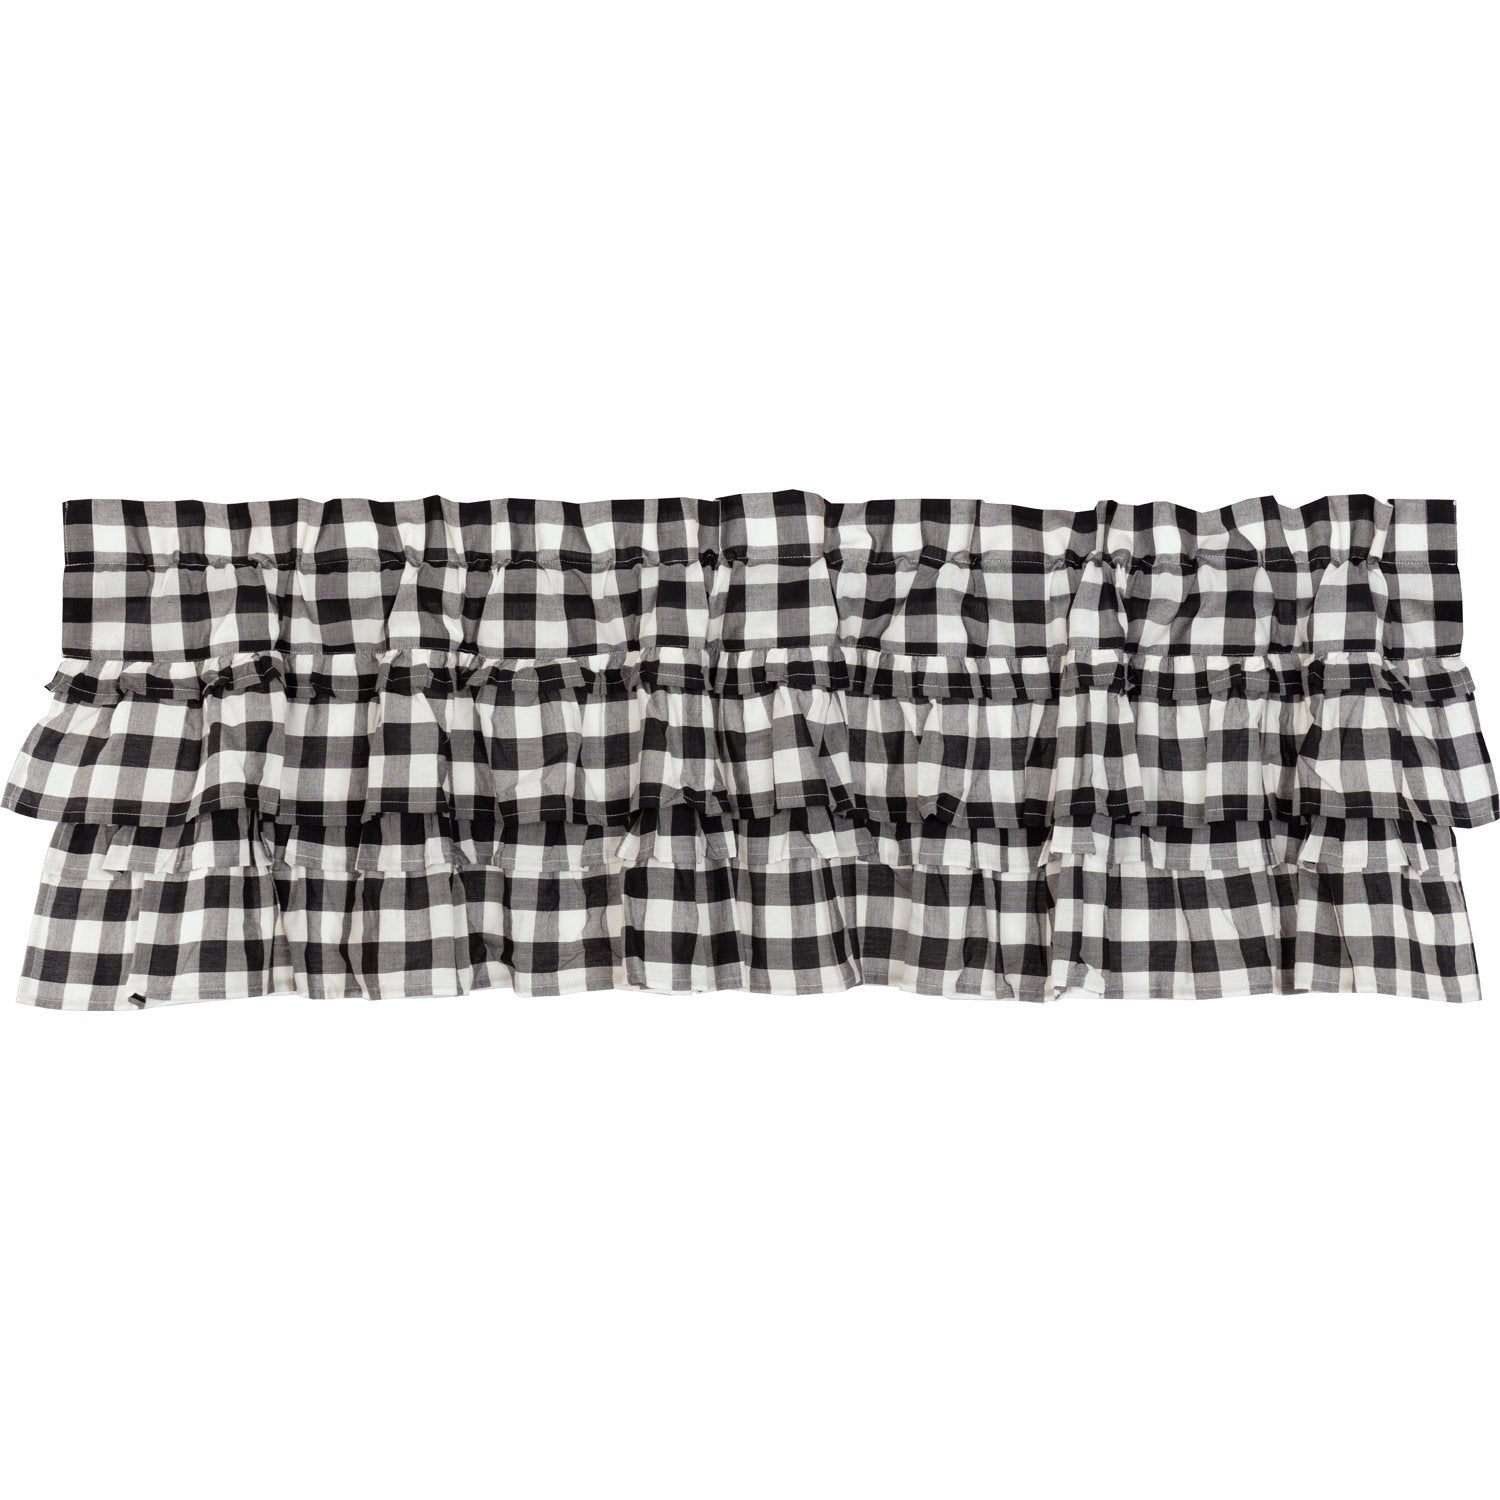 Annie Buffalo Black Check Ruffled Valance